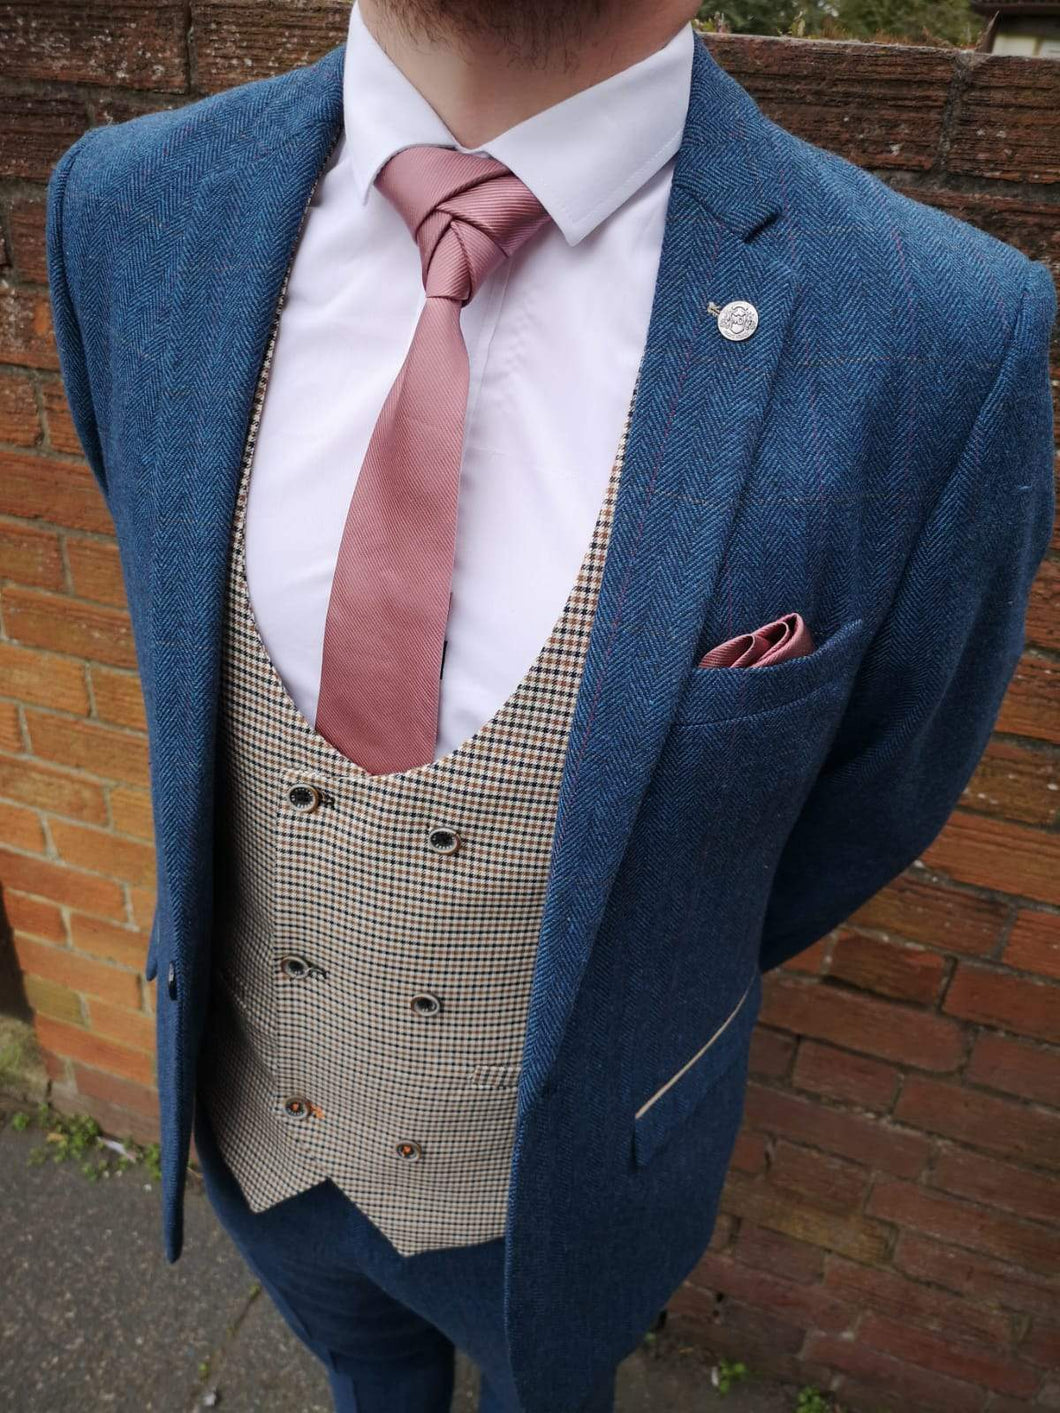 Formal Mix and Match 2 marc-darcy-dion-tweed-herringbone-blazer-with-paisley-lining-blue / cavani-elwood-brown-houndstooth-waistcoat / marc-darcy-dion-tweed-herringbone-check-trousers-blue